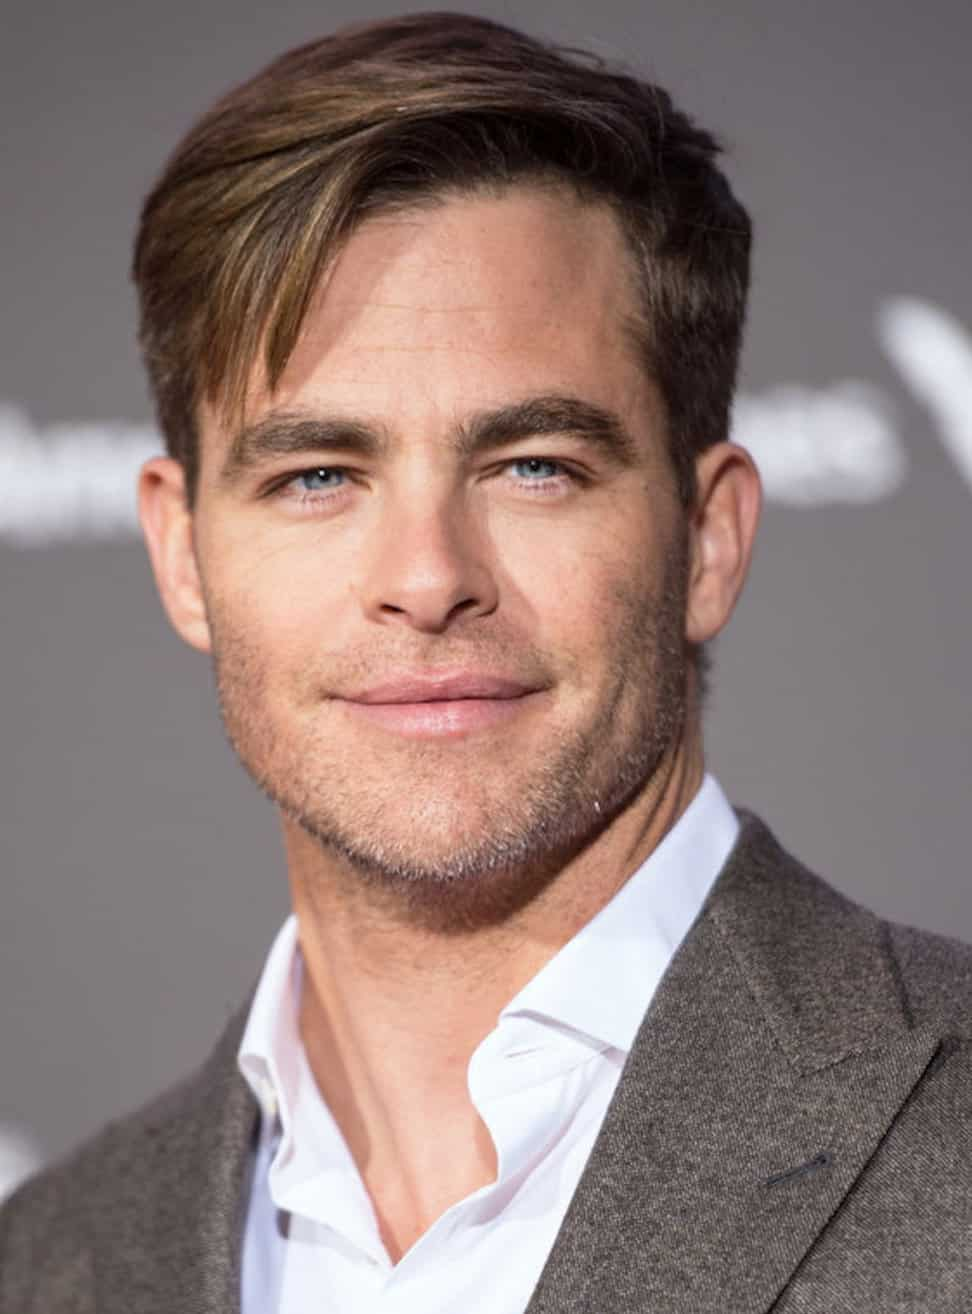 All The Old Knives | Agenten Film mit Chris Pine